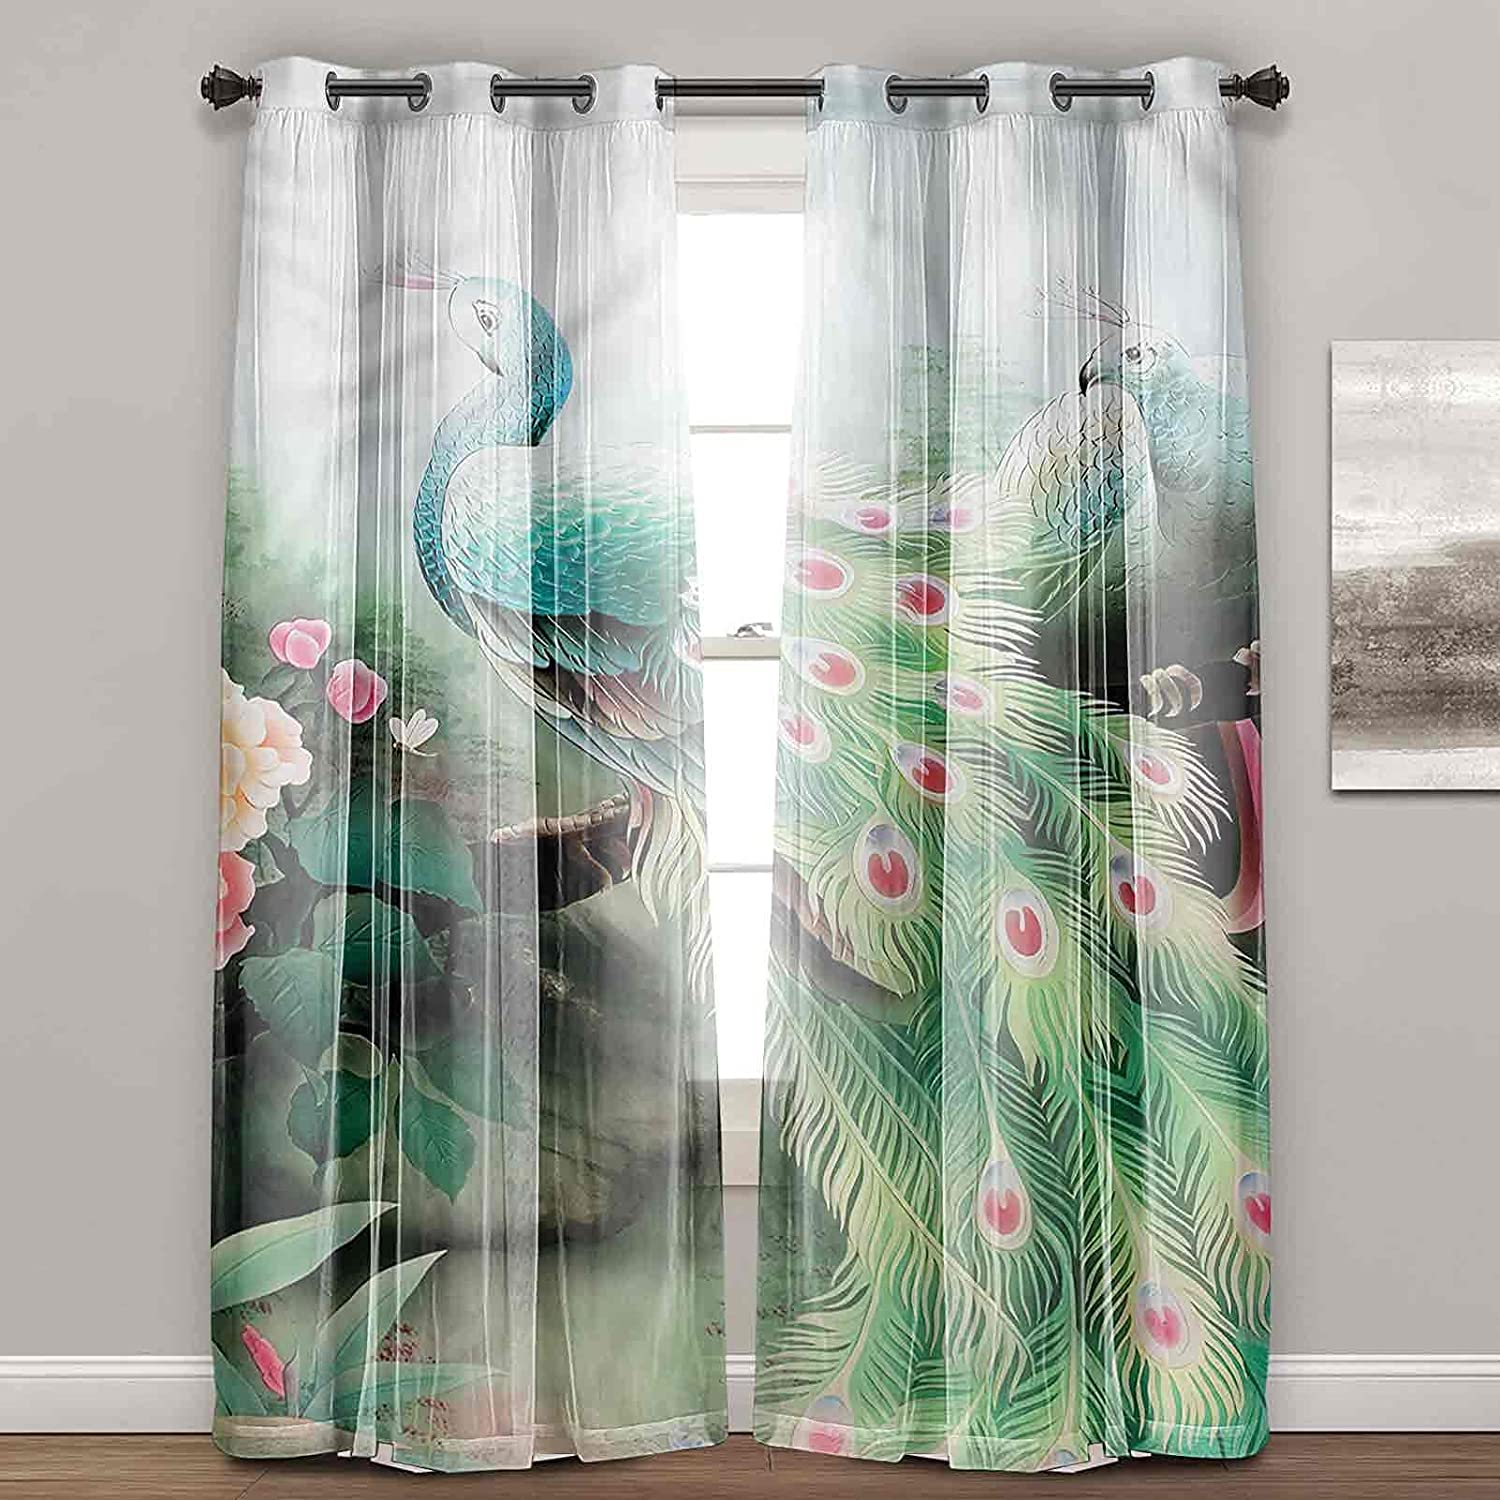 Light Blocking New products world's highest quality popular Curtains Peacock Garden Farmhouse Summer Flower Super popular specialty store